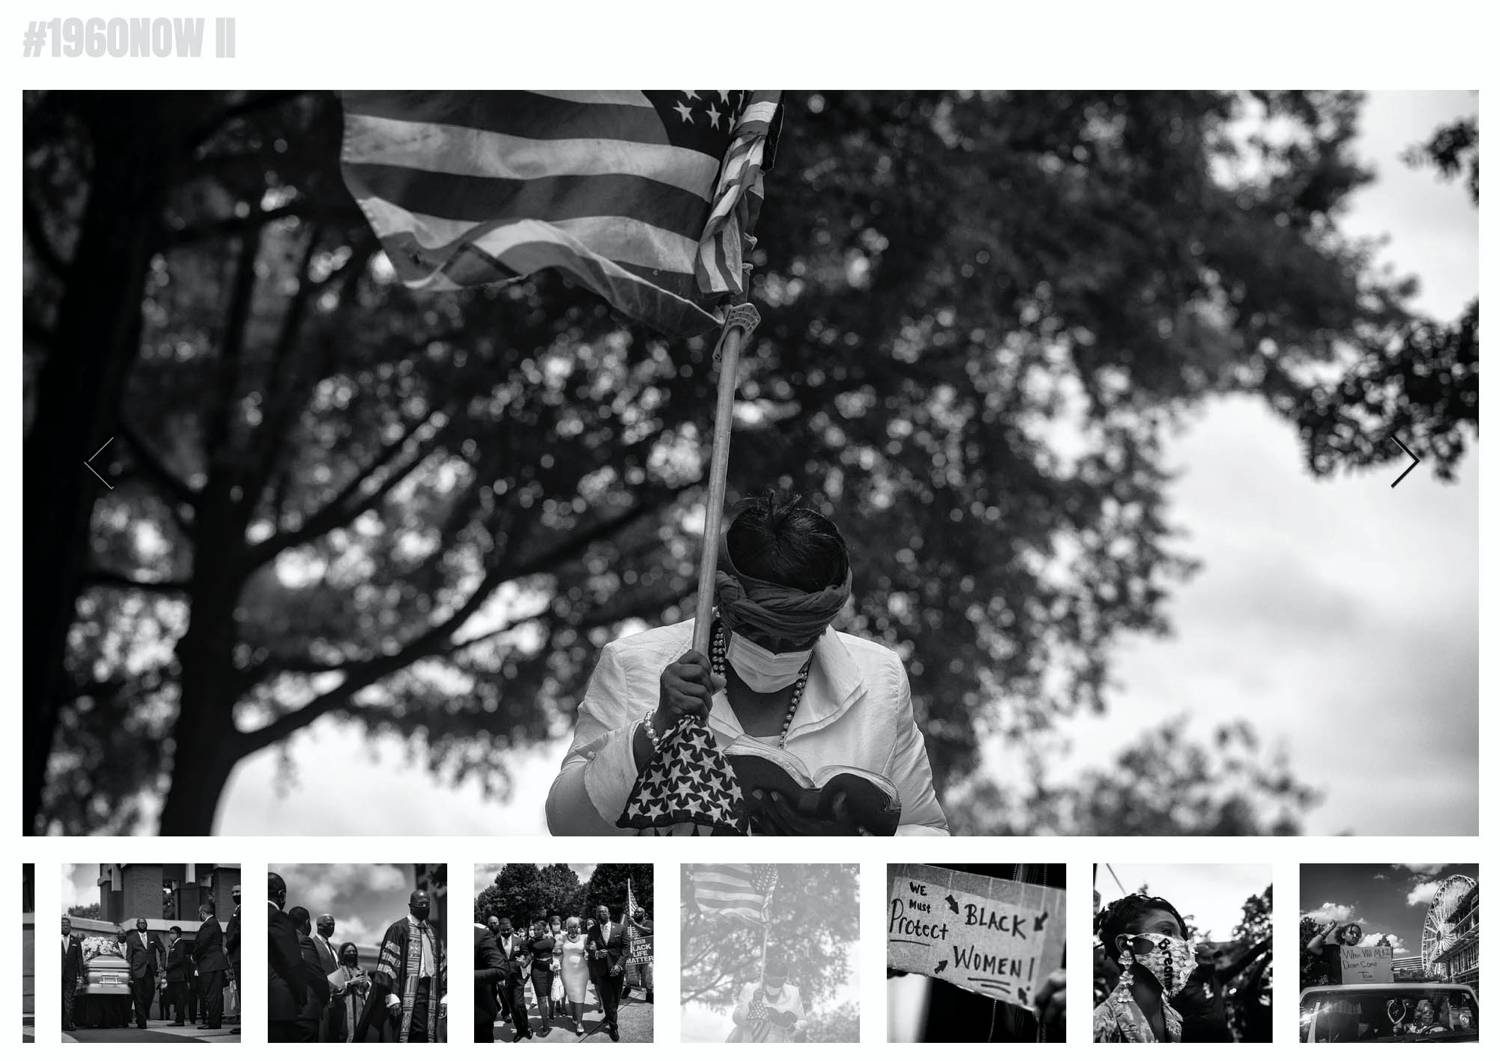 Website: Sheila Pree Bright's series of mourners and protesters holding American flags and begging for the violence against Black people and People of Color to stop.